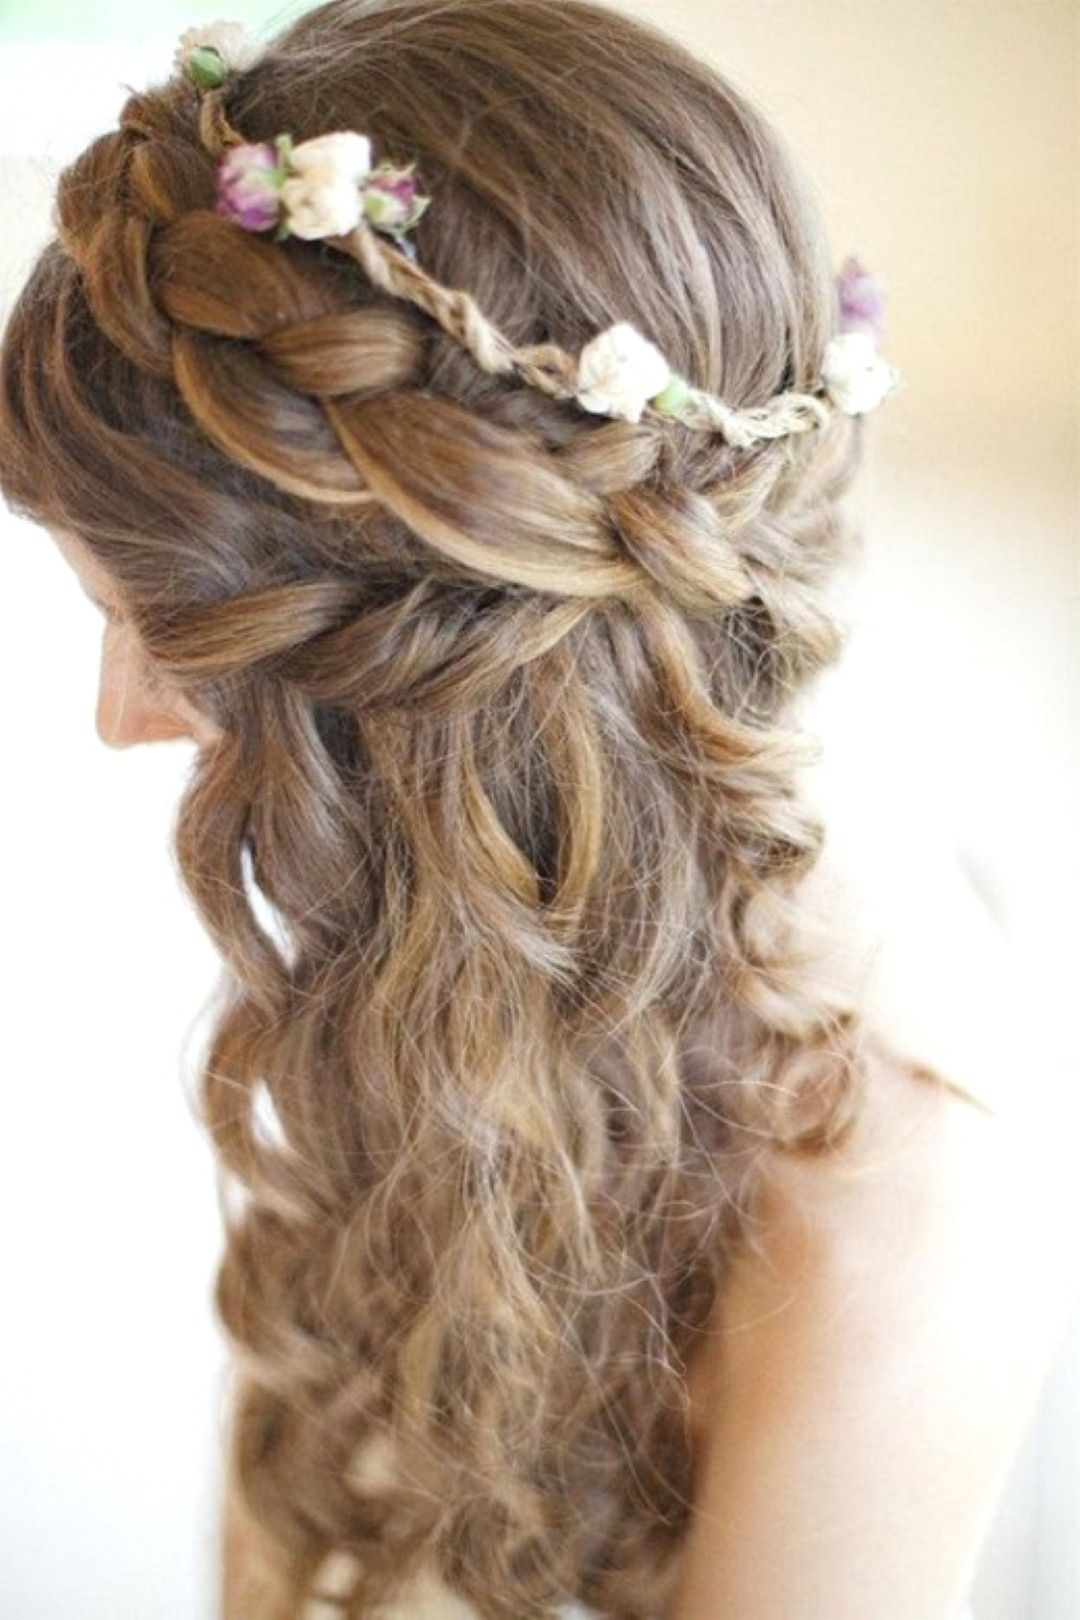 Incredible 1000 Images About Prom Hair Styels On Pinterest Prom Hairstyles Short Hairstyles For Black Women Fulllsitofus